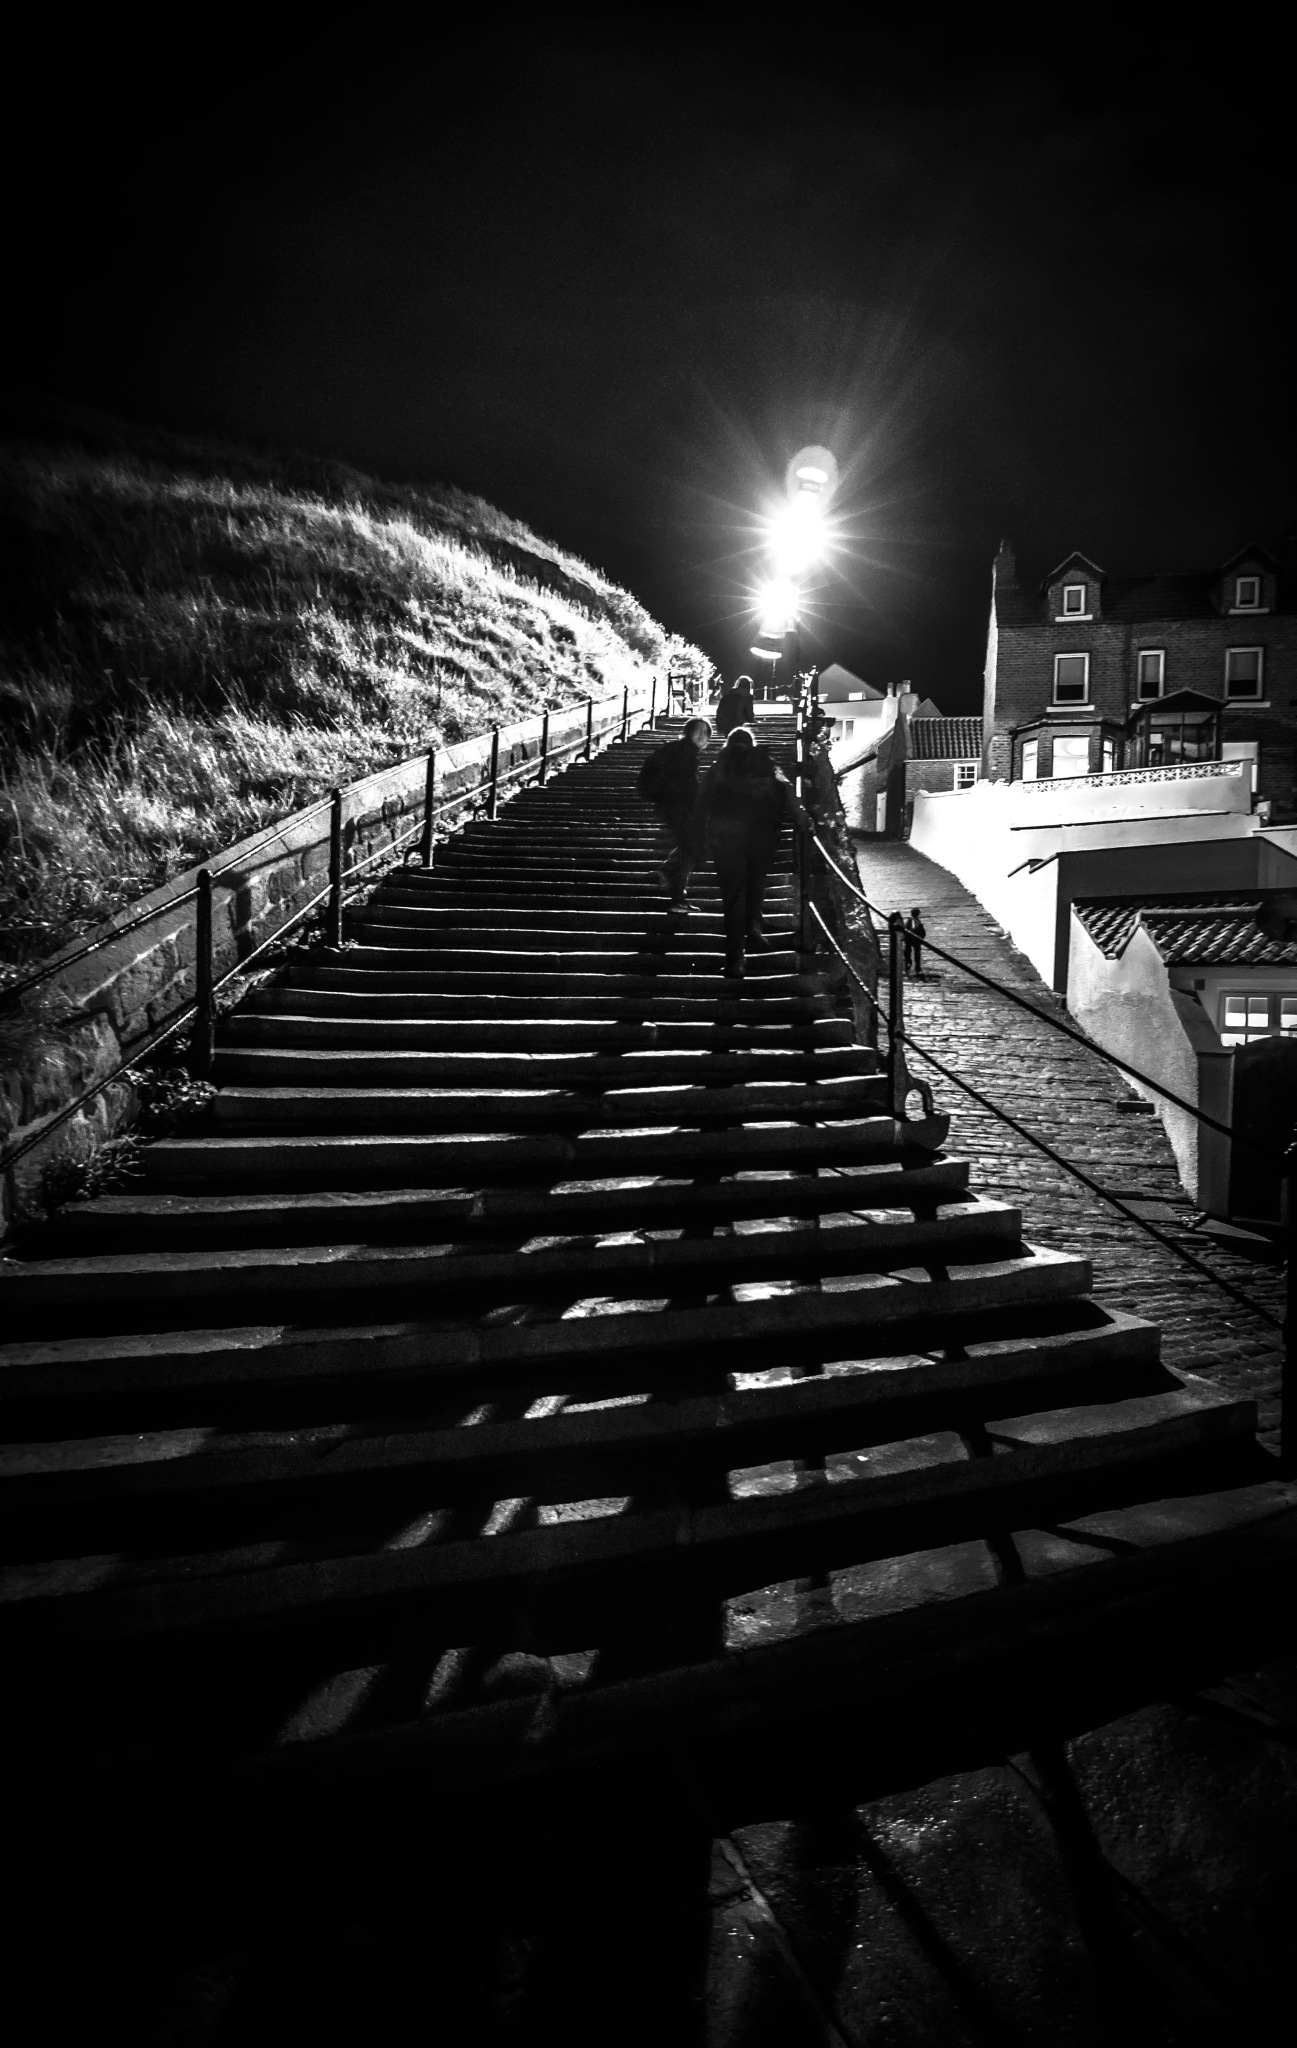 199 steps by mark fisher